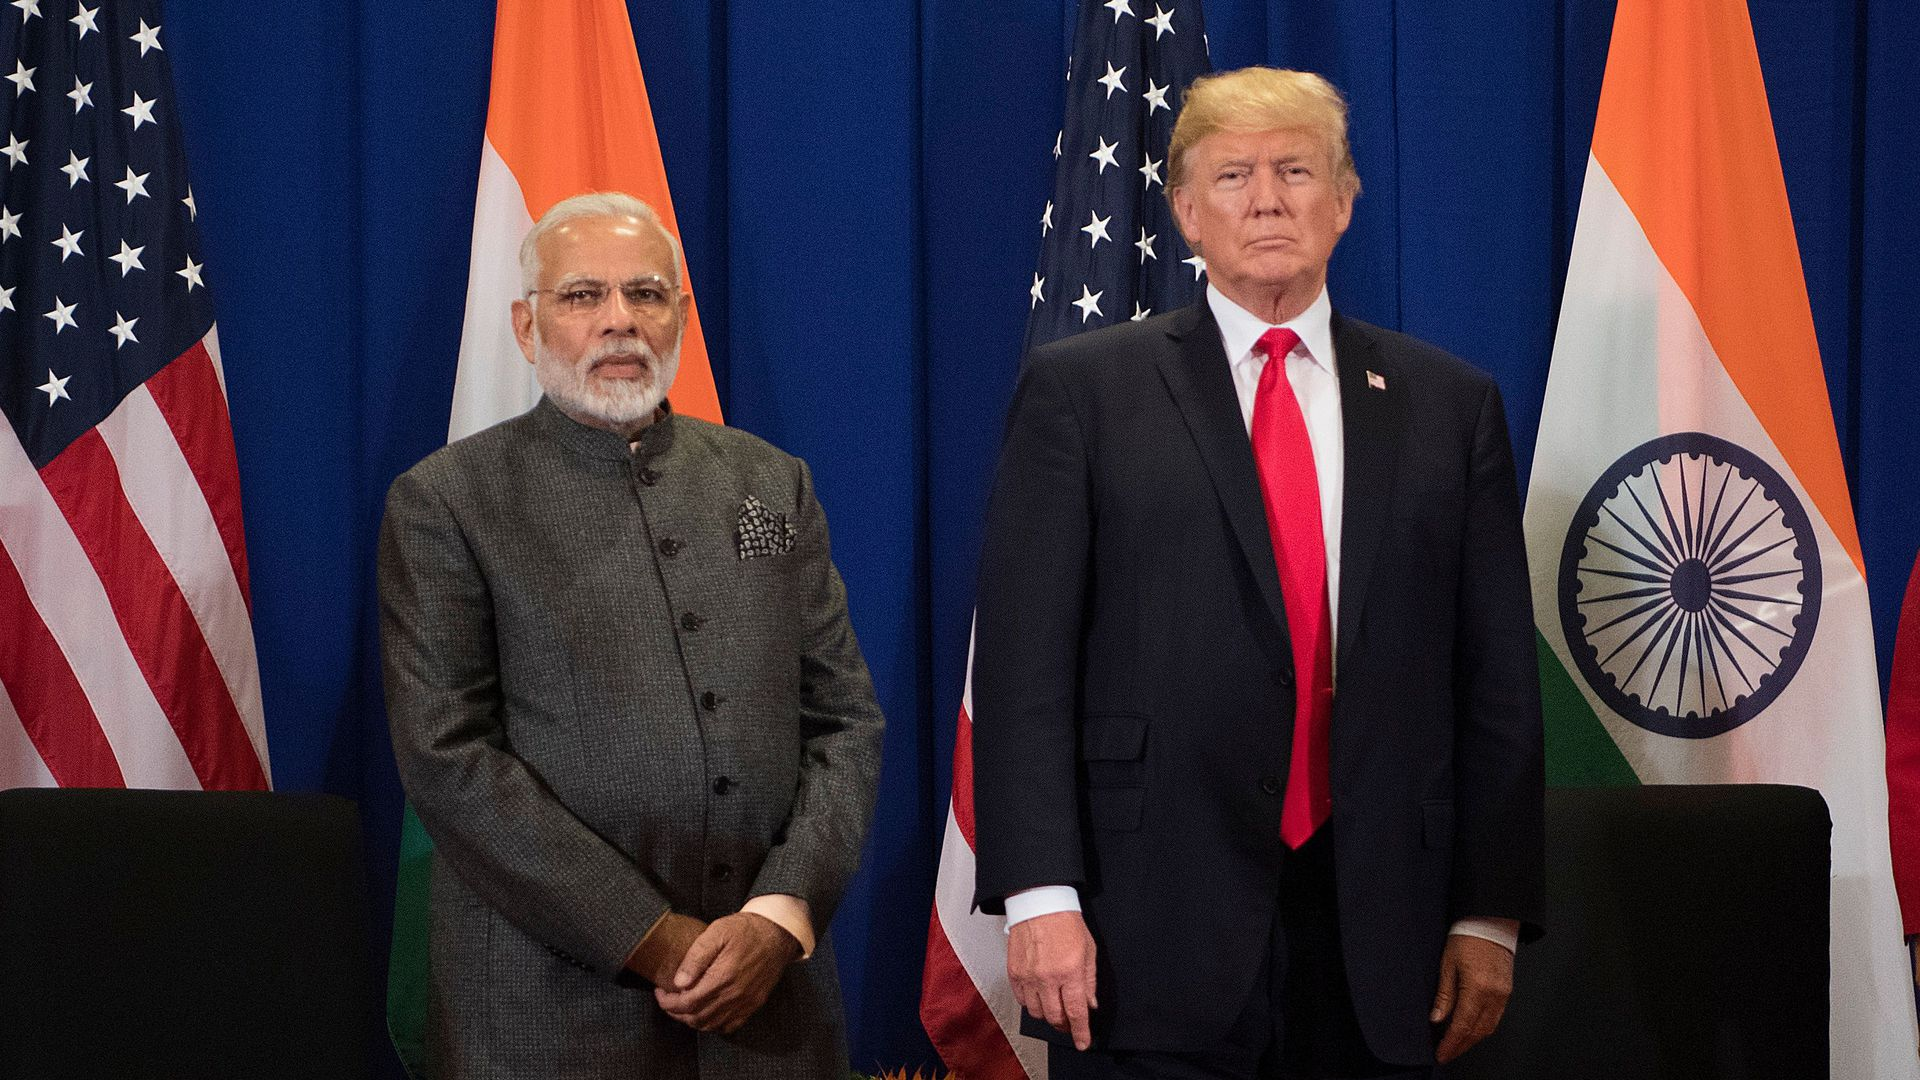 President Trump says Narendra Modi's India failed to assure the U.S. it'd provide reasonable access to its markets.